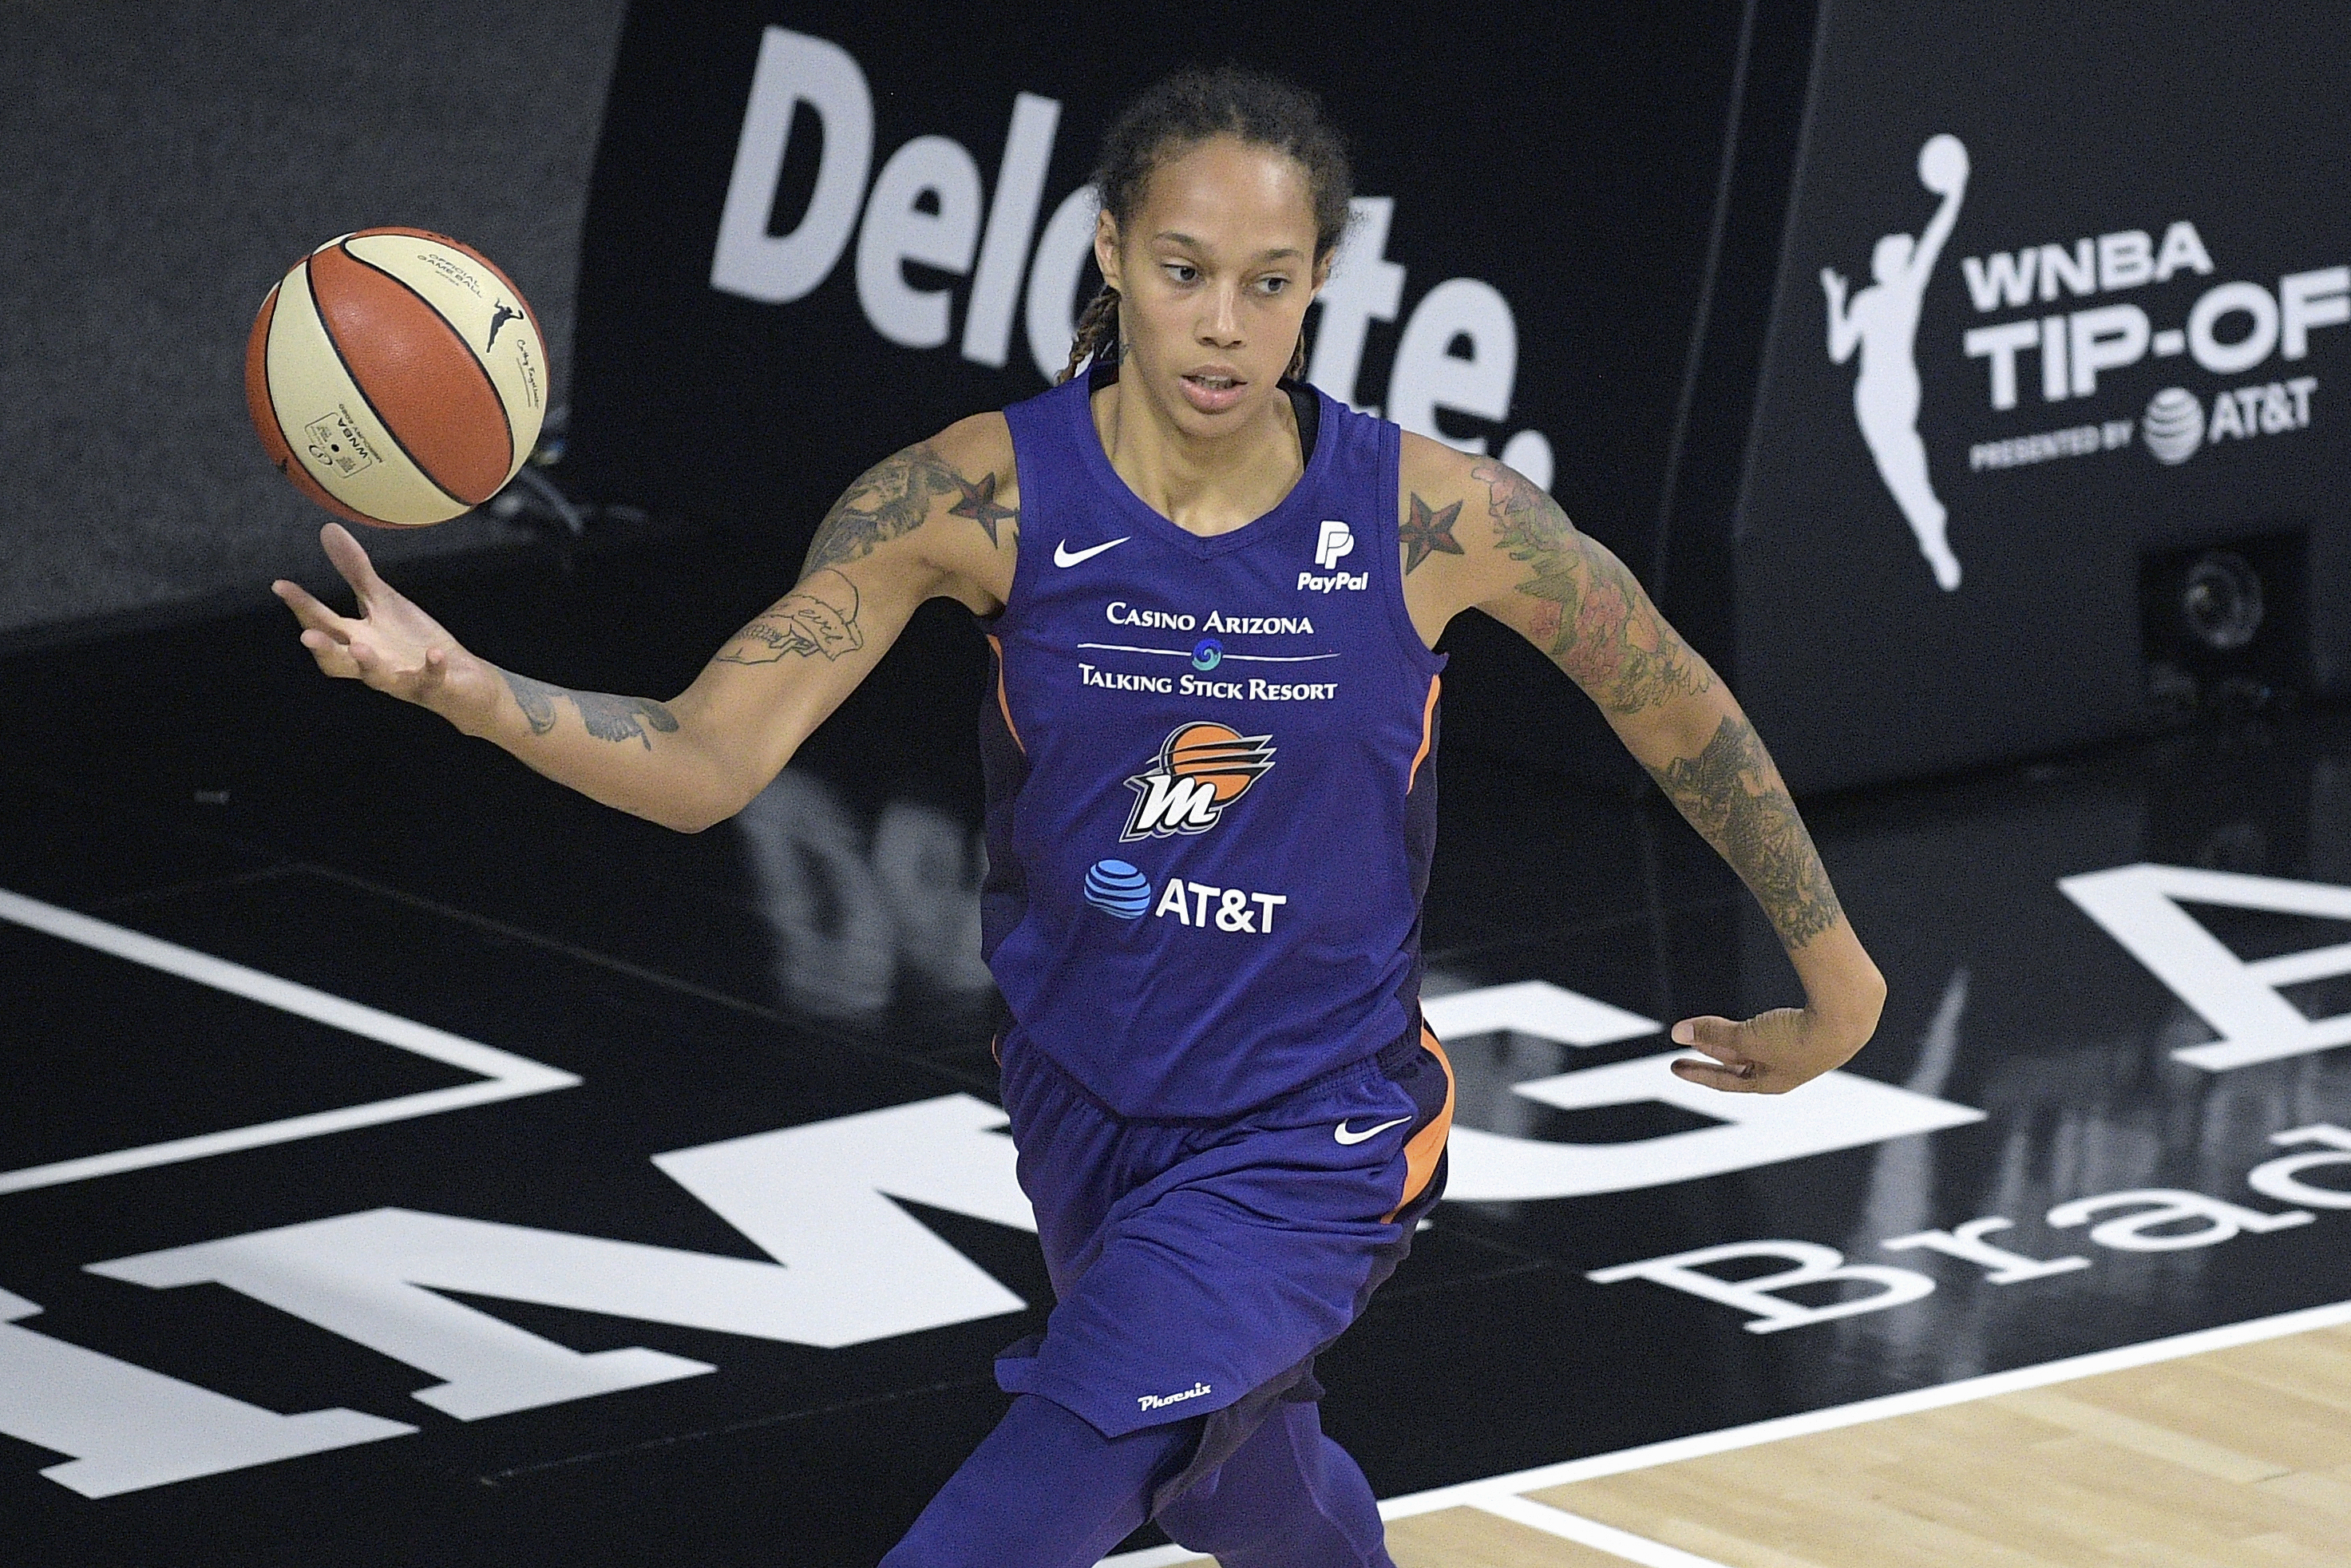 The Phoenix Mercury's Brittney Griner said that she left the WNBA bubble last summer because of mental health reasons and has been undergoing counseling.